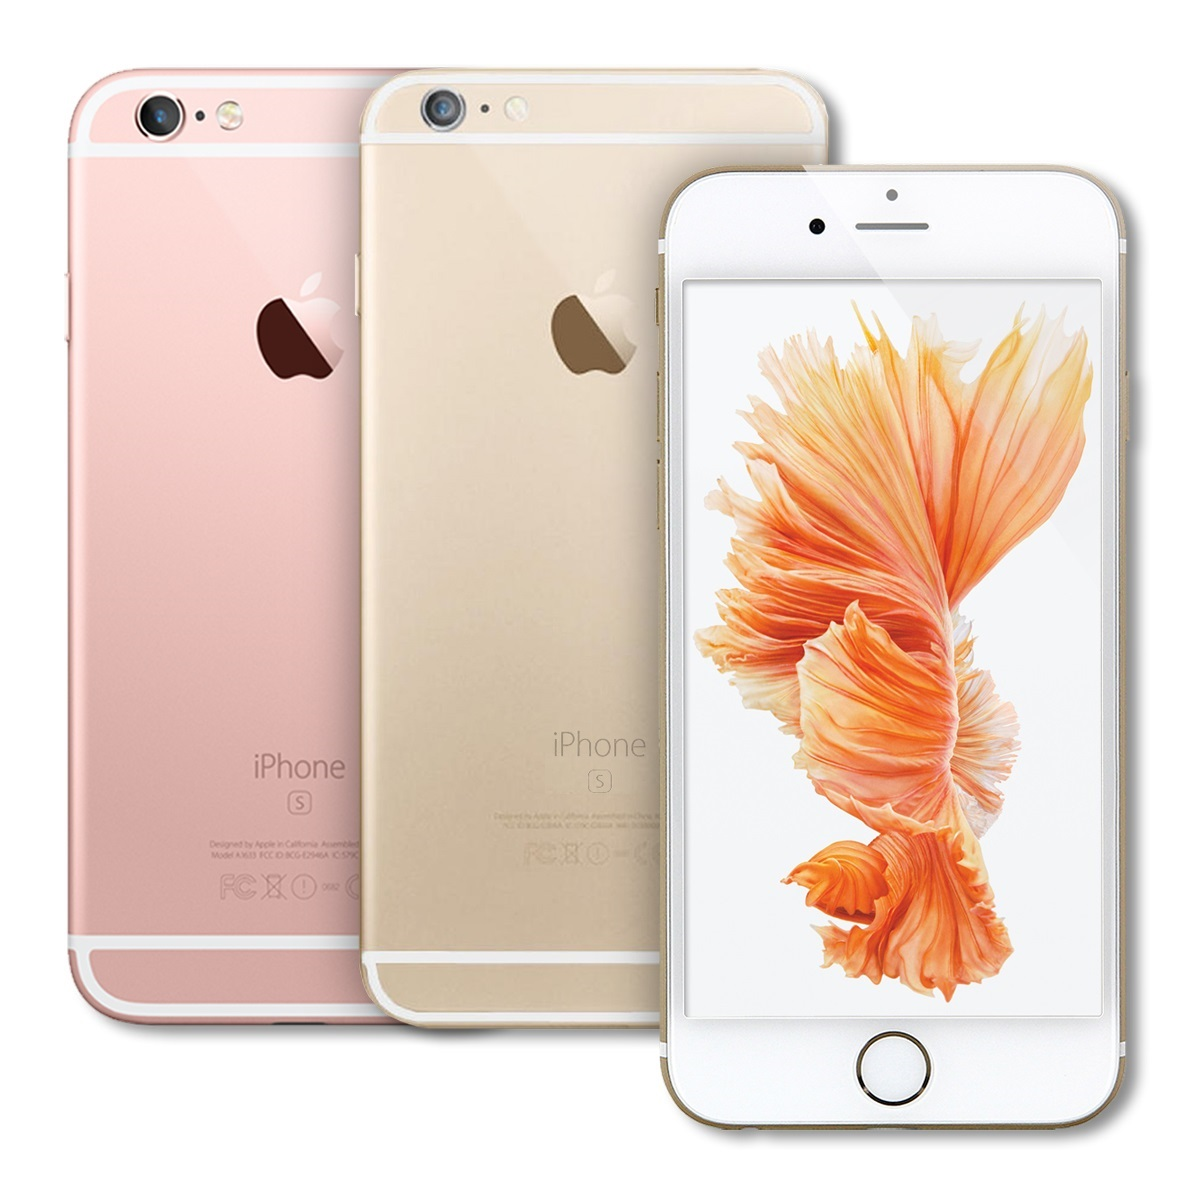 apple iphone 6s 32gb smartphone unlocked a1688 sprint t mobile verizon ebay. Black Bedroom Furniture Sets. Home Design Ideas